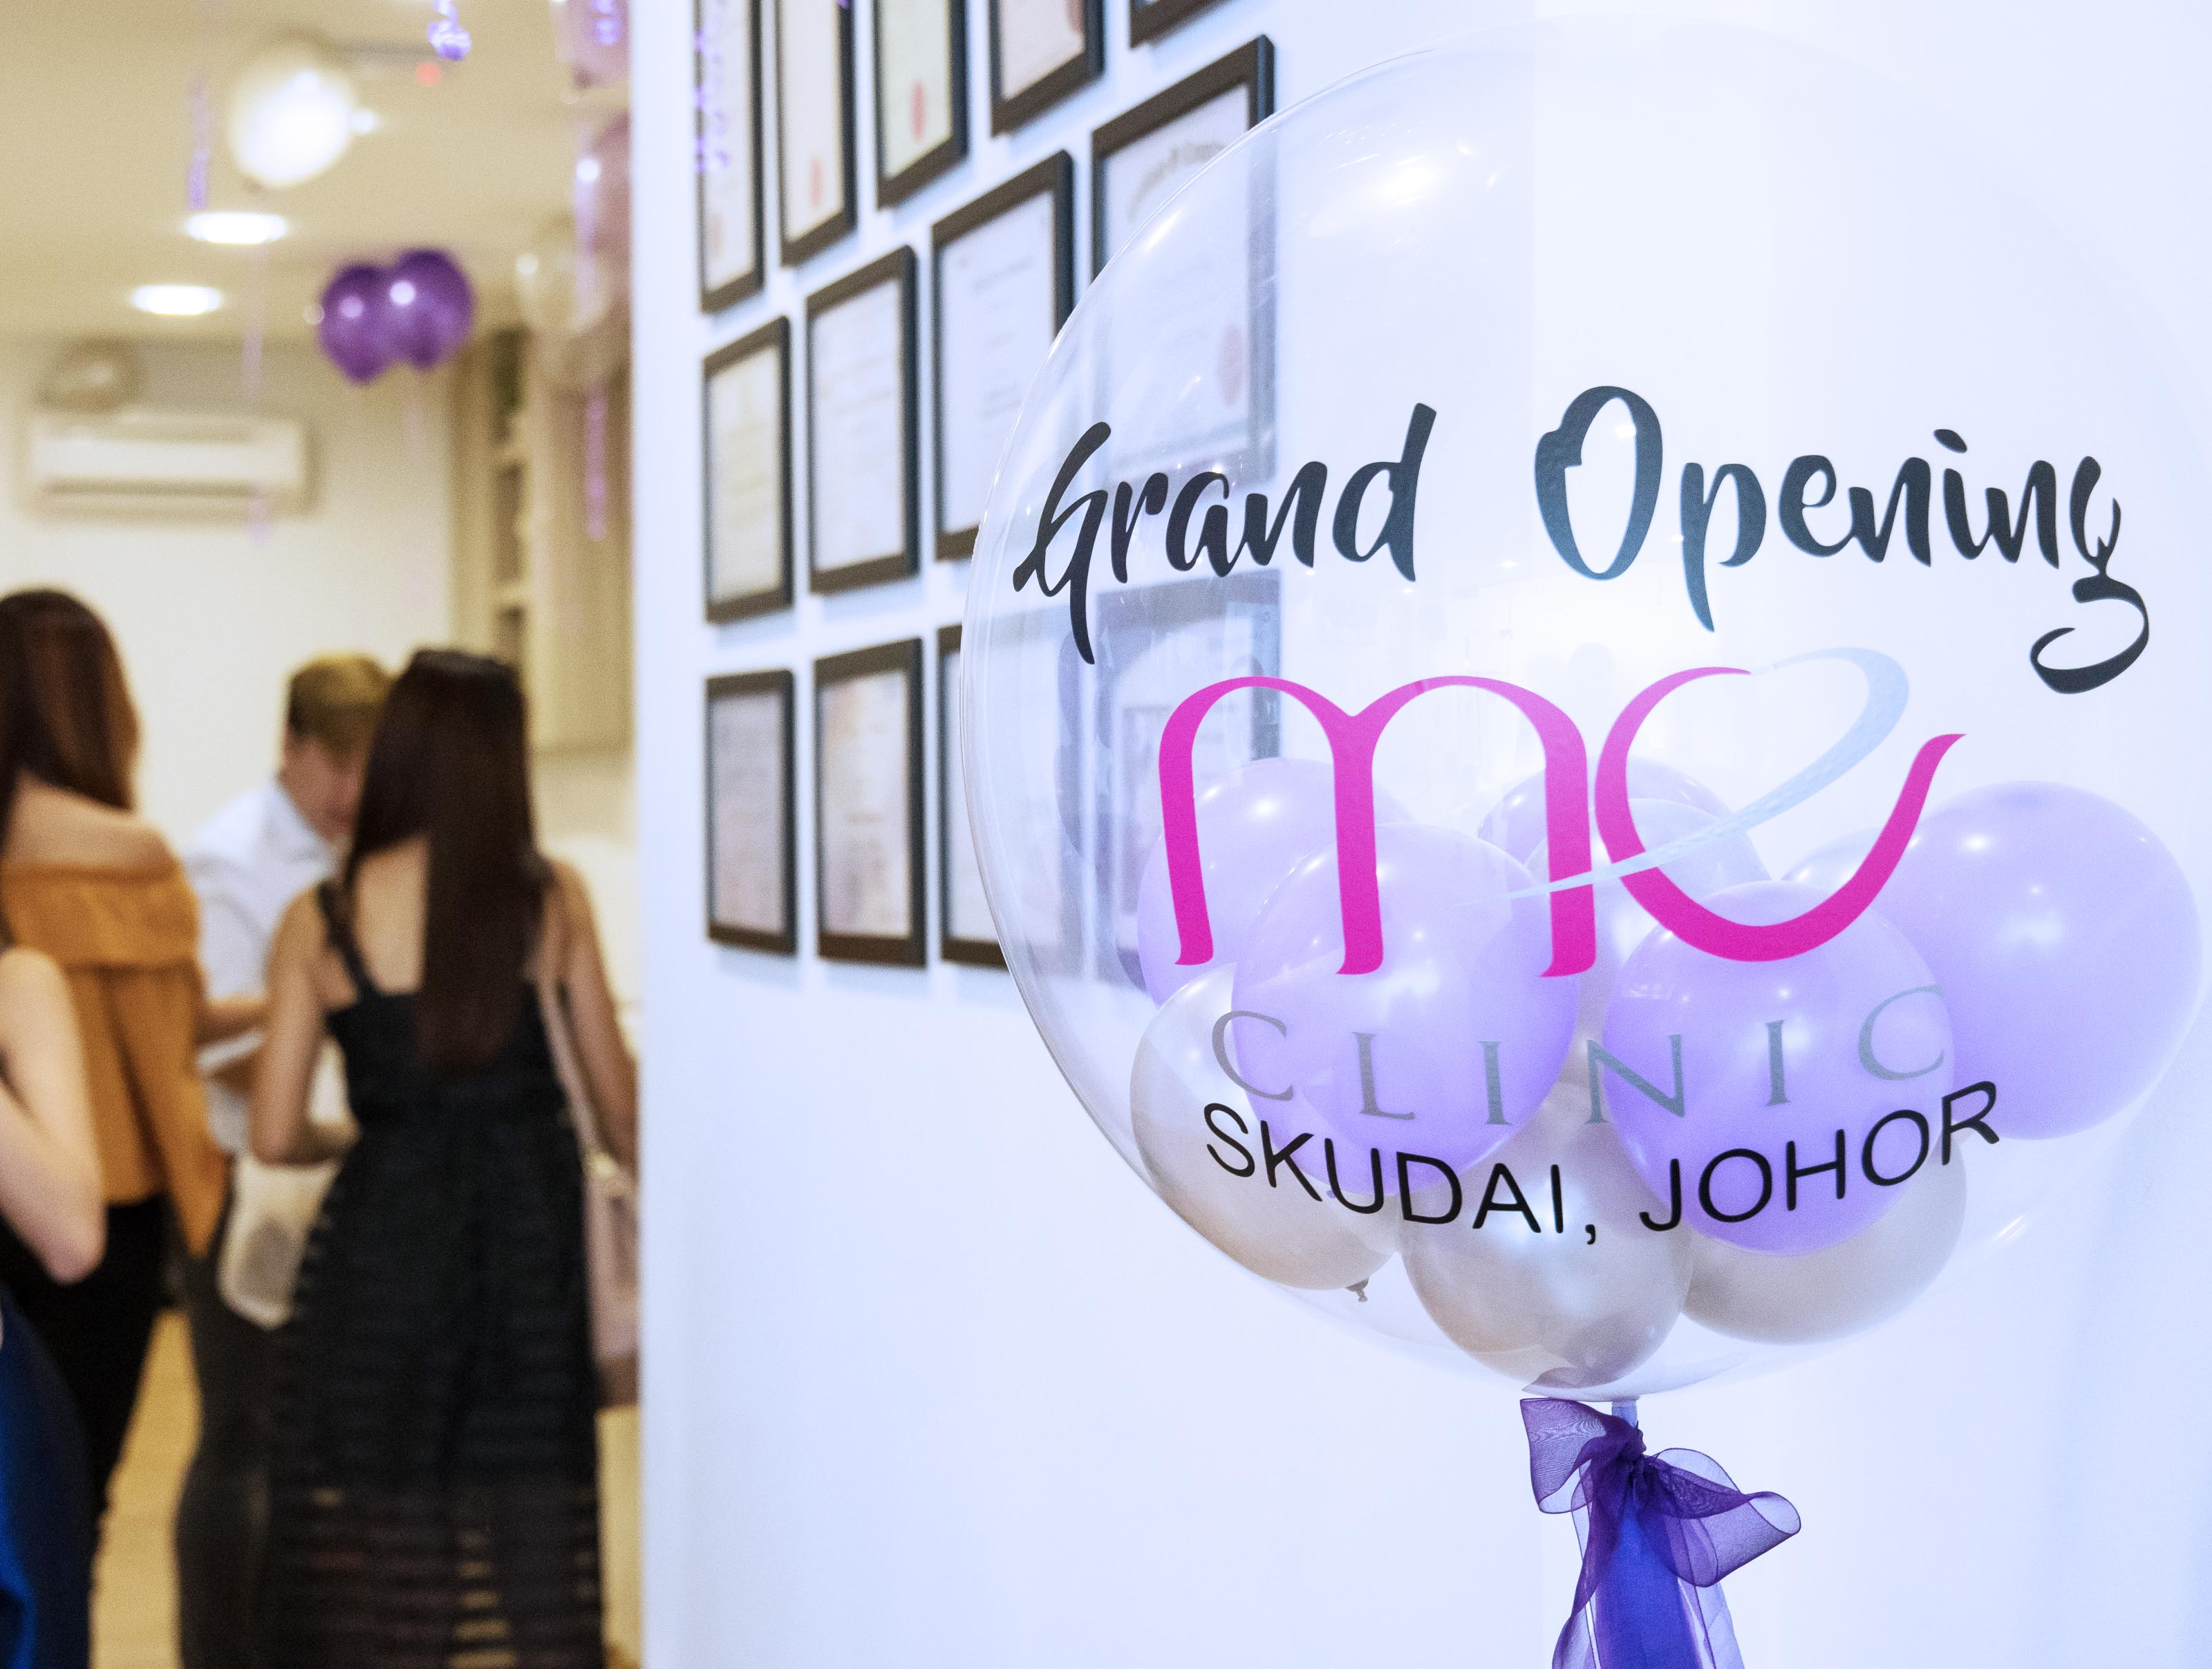 Grand Opening Of Me Aesthetic Clinic Skudai